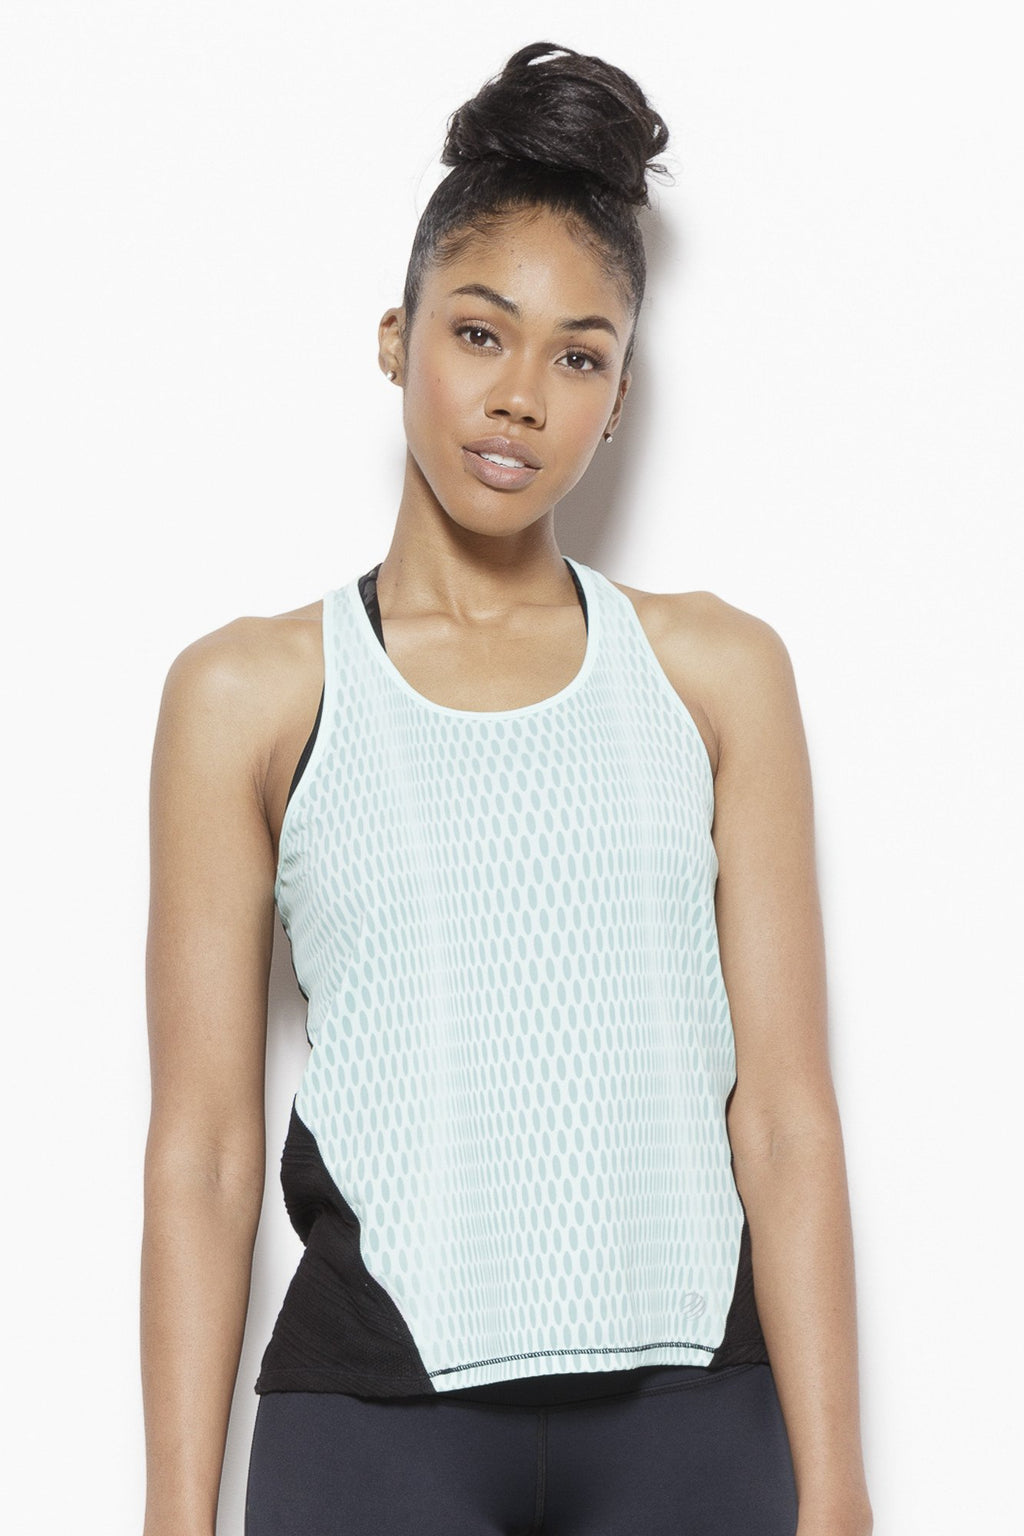 Solar Eclipse Tank Top-Teal Clothing MPG S Polyester jersey; polyester/spandex mesh Teal